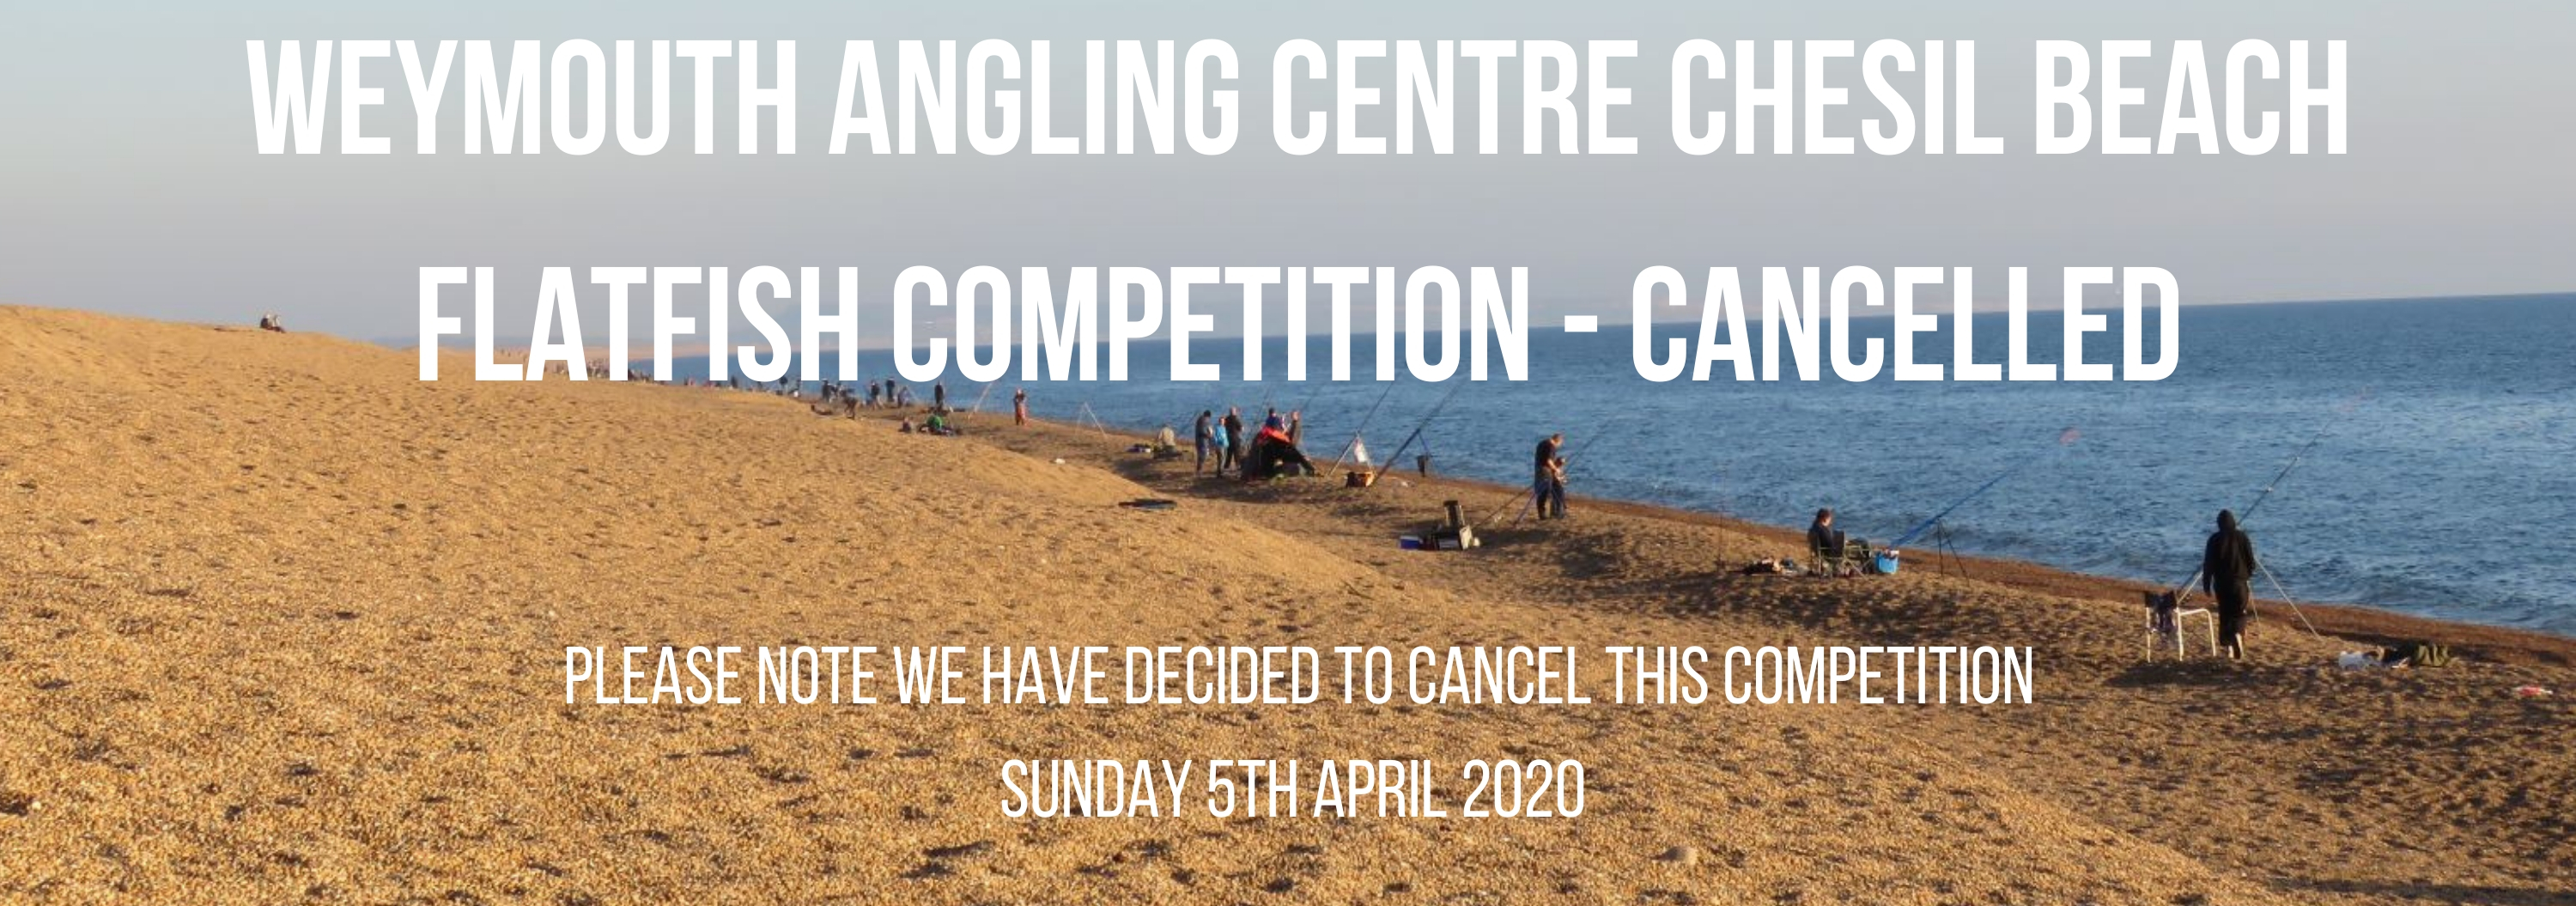 Weymouth Angling Centre Chesil Beach Flatfish Open 2020 - CANCELLED